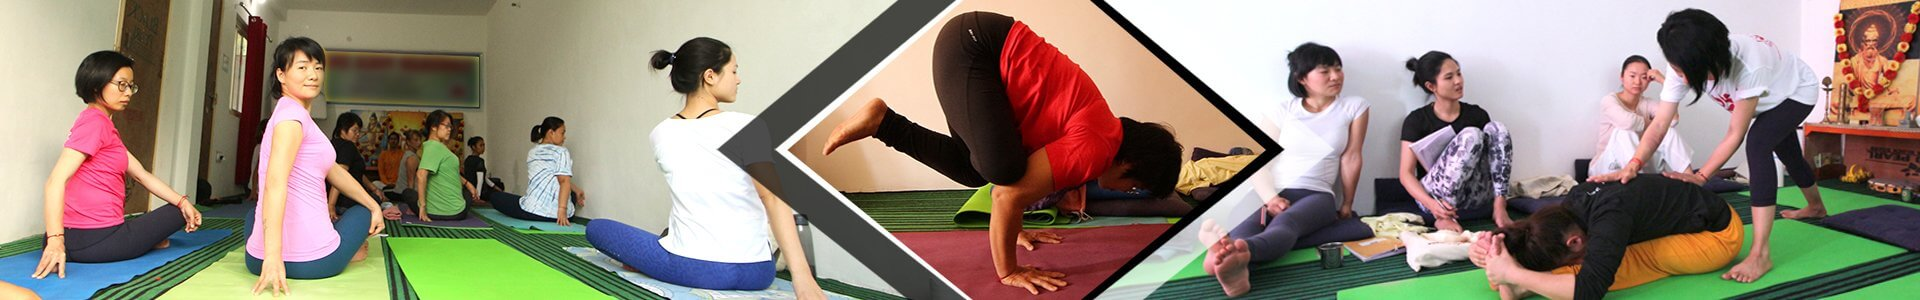 yoga-school-in-rishikesh-india-sanskar-yogashala